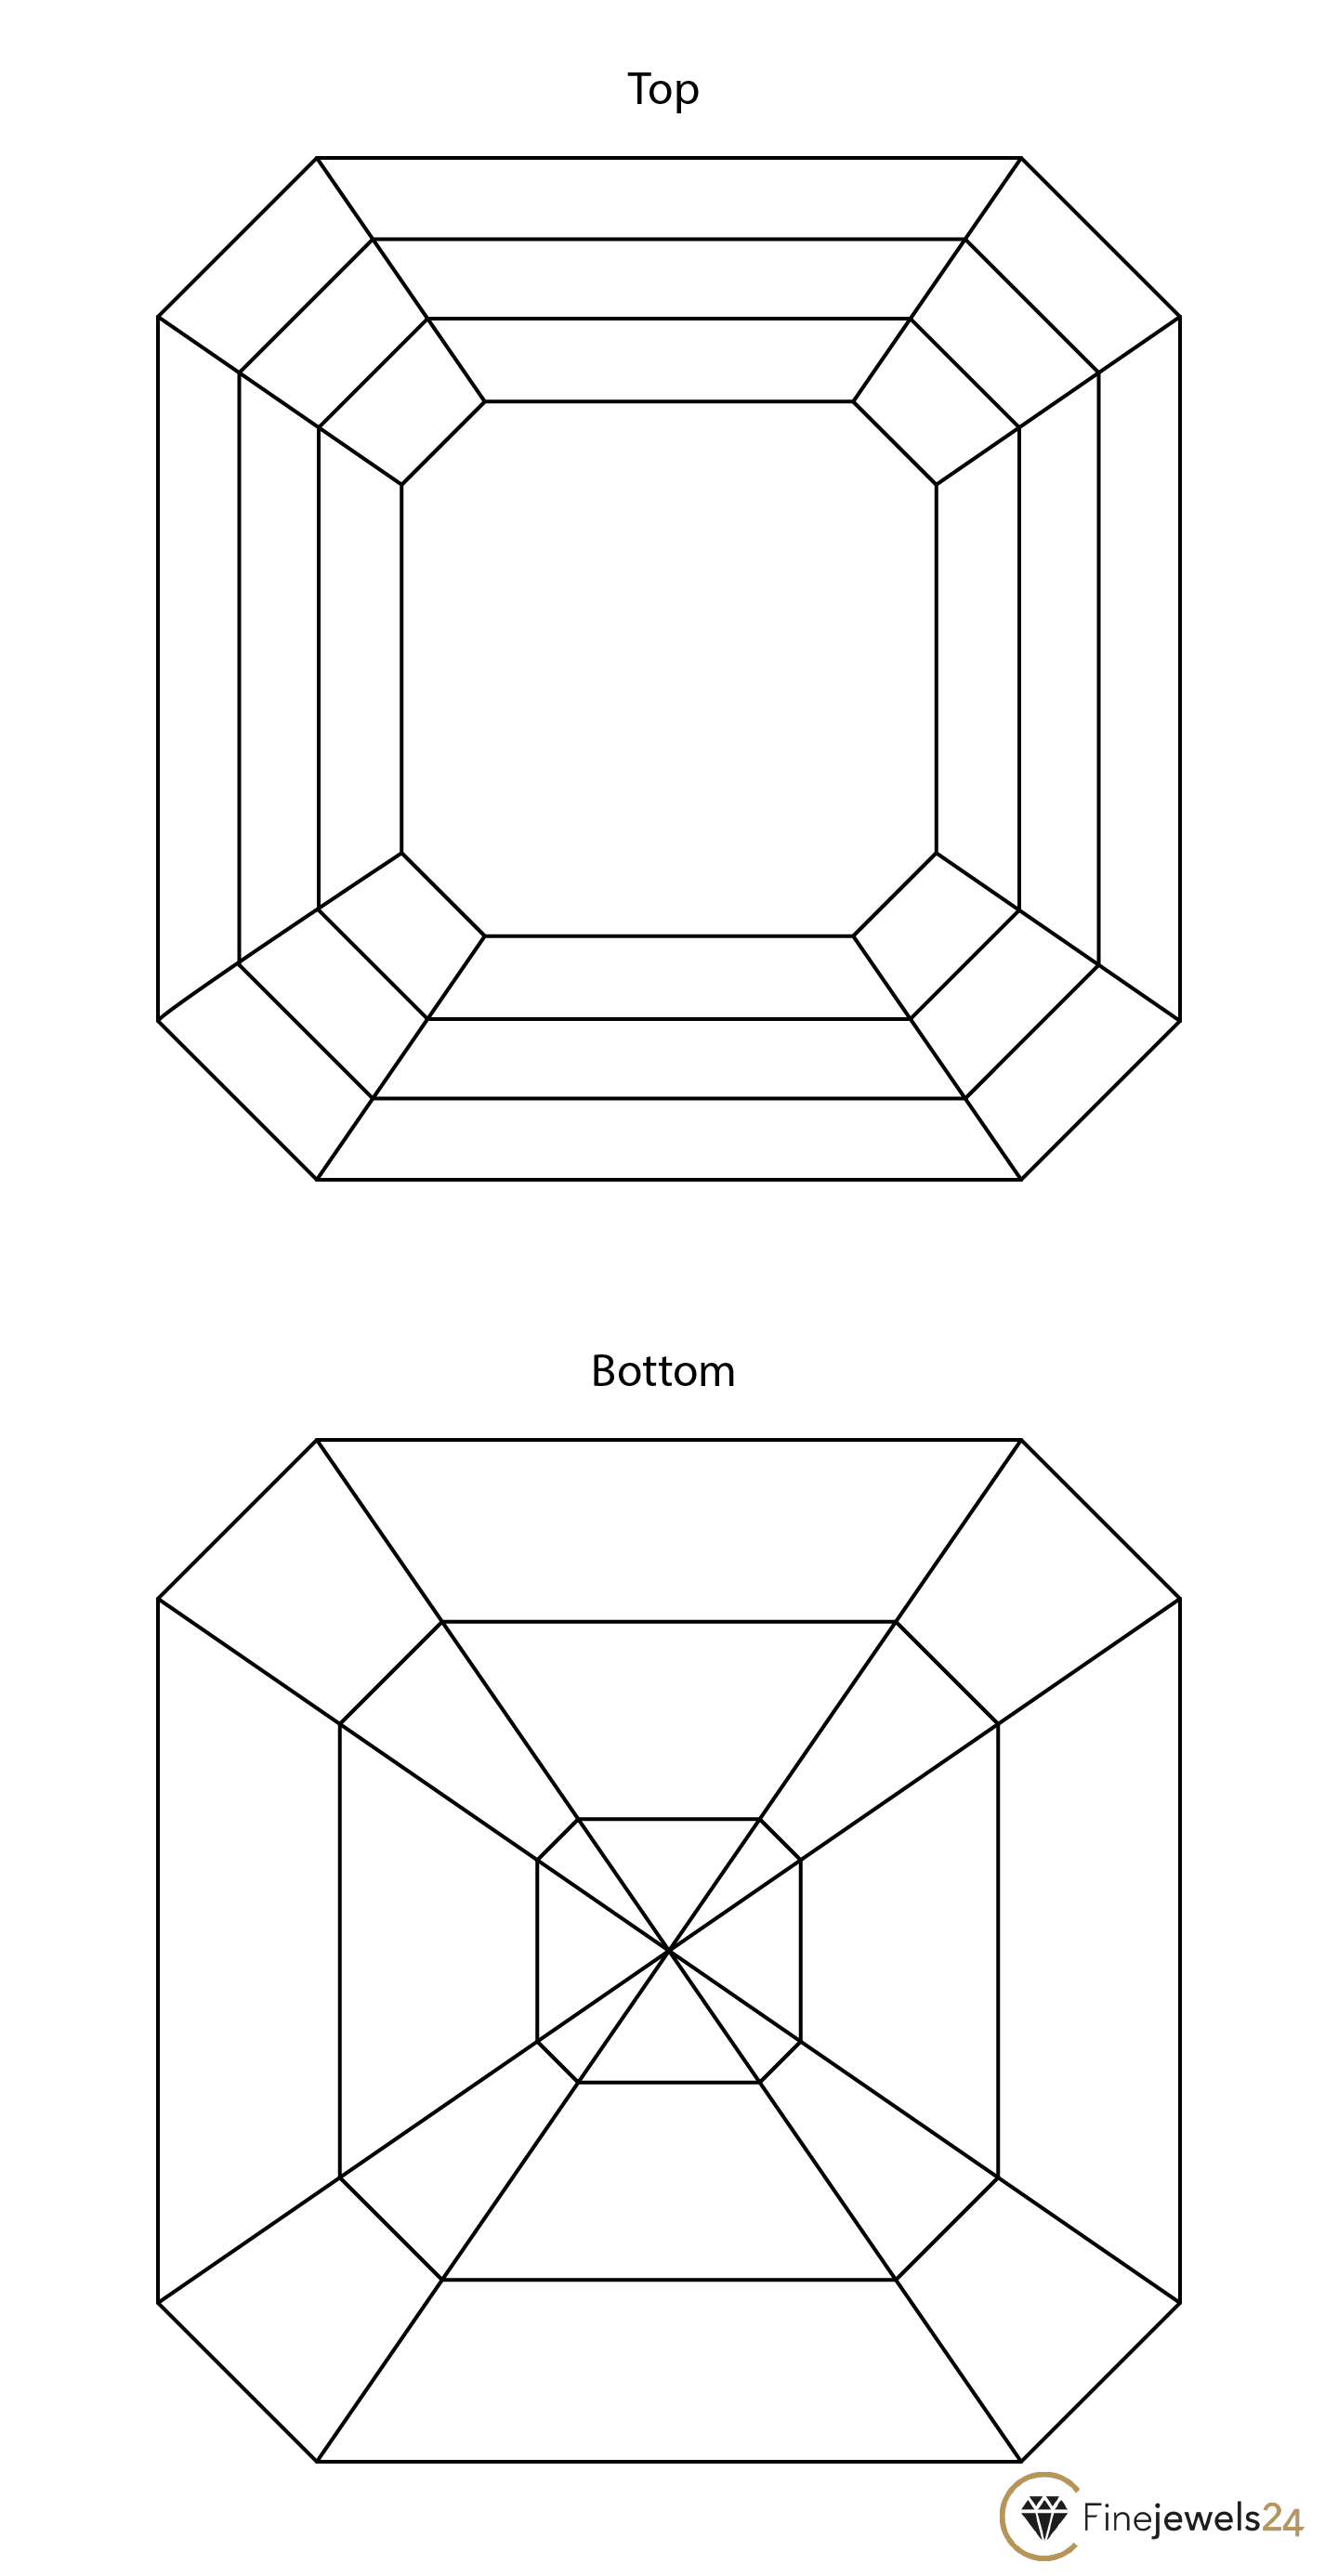 Asscher cut sketches of top and bottom view